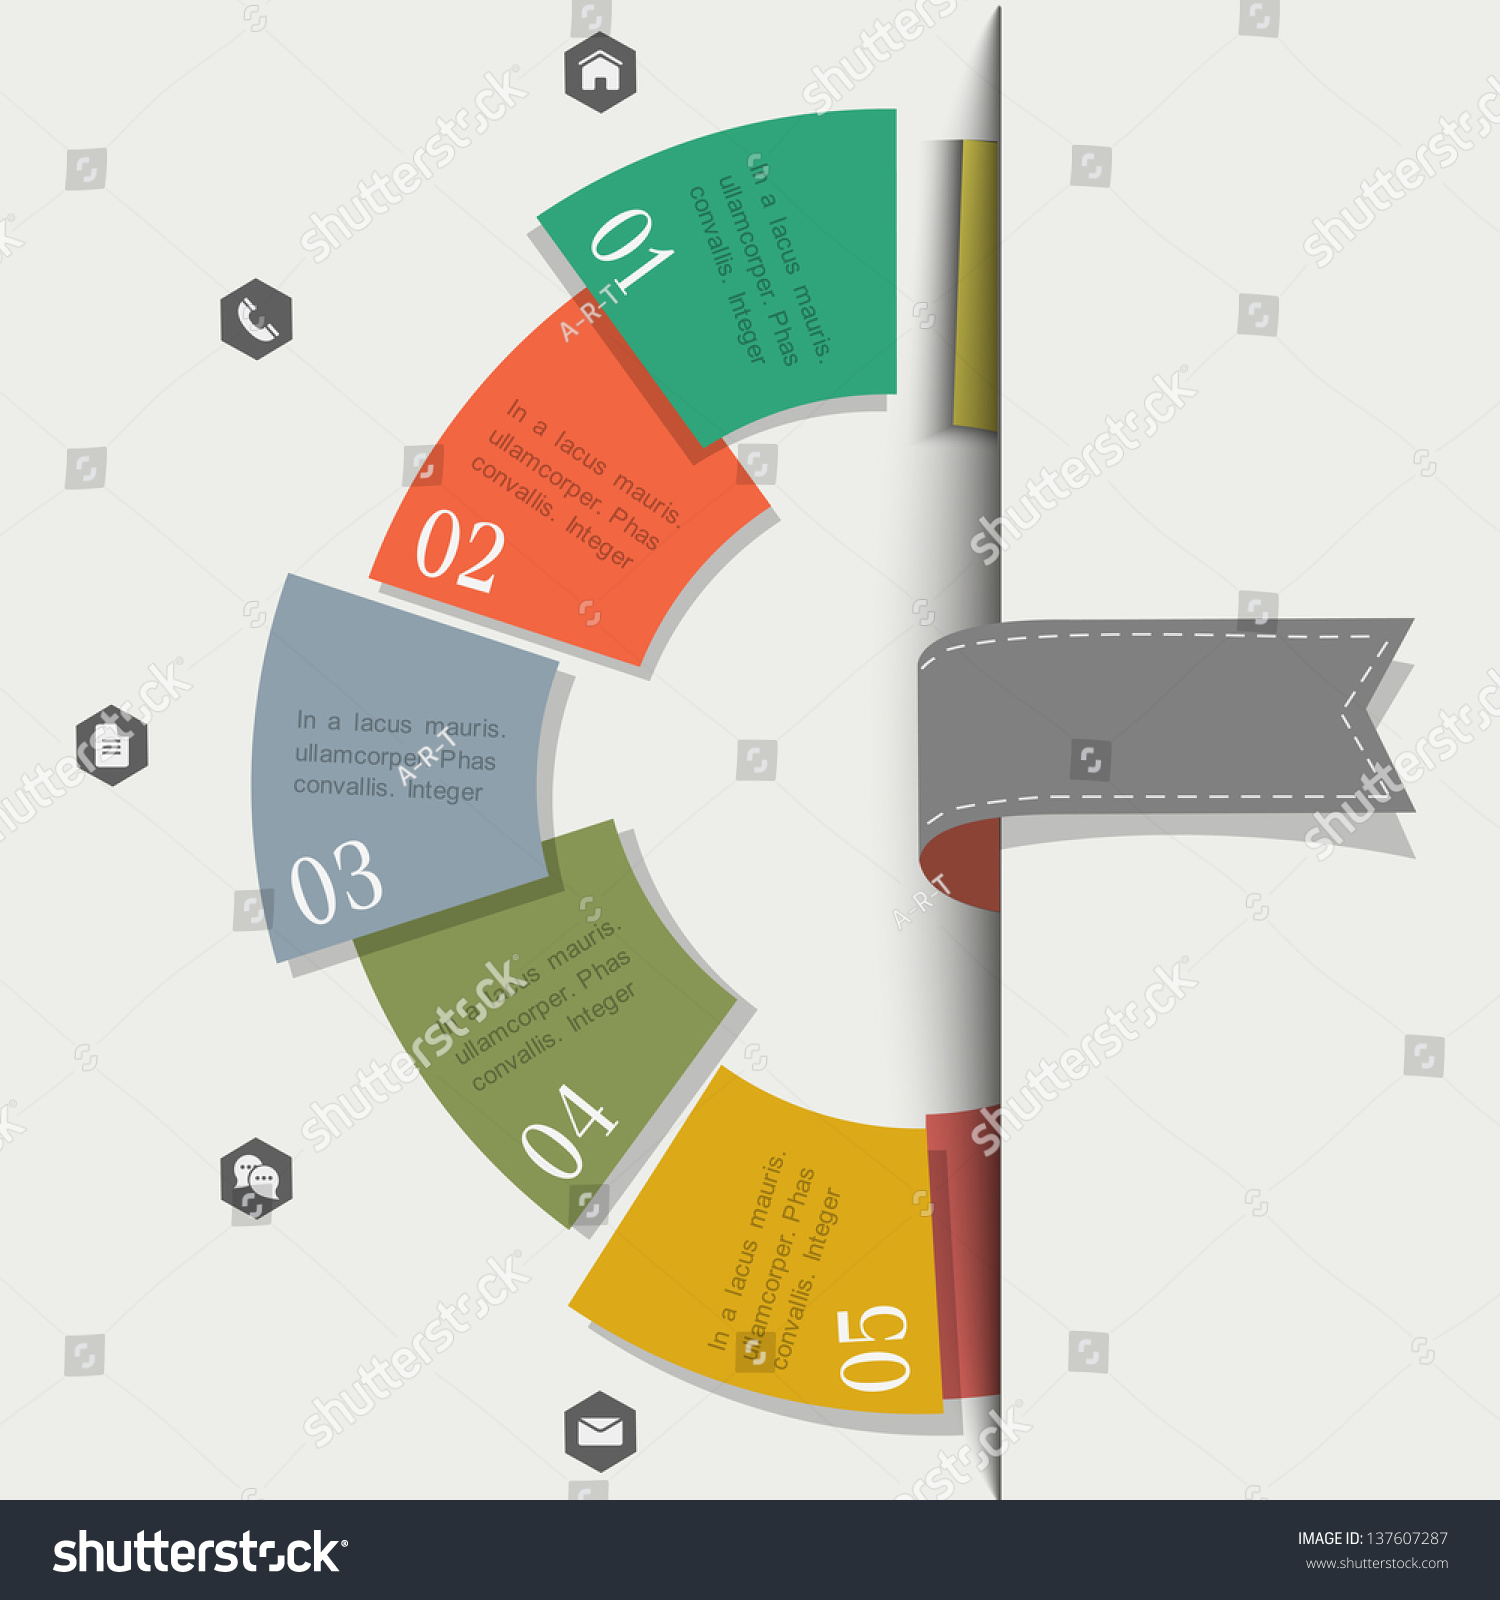 creative design template infographics website templates stock creative design template for infographics and website templates or design graphic for business vector eps10